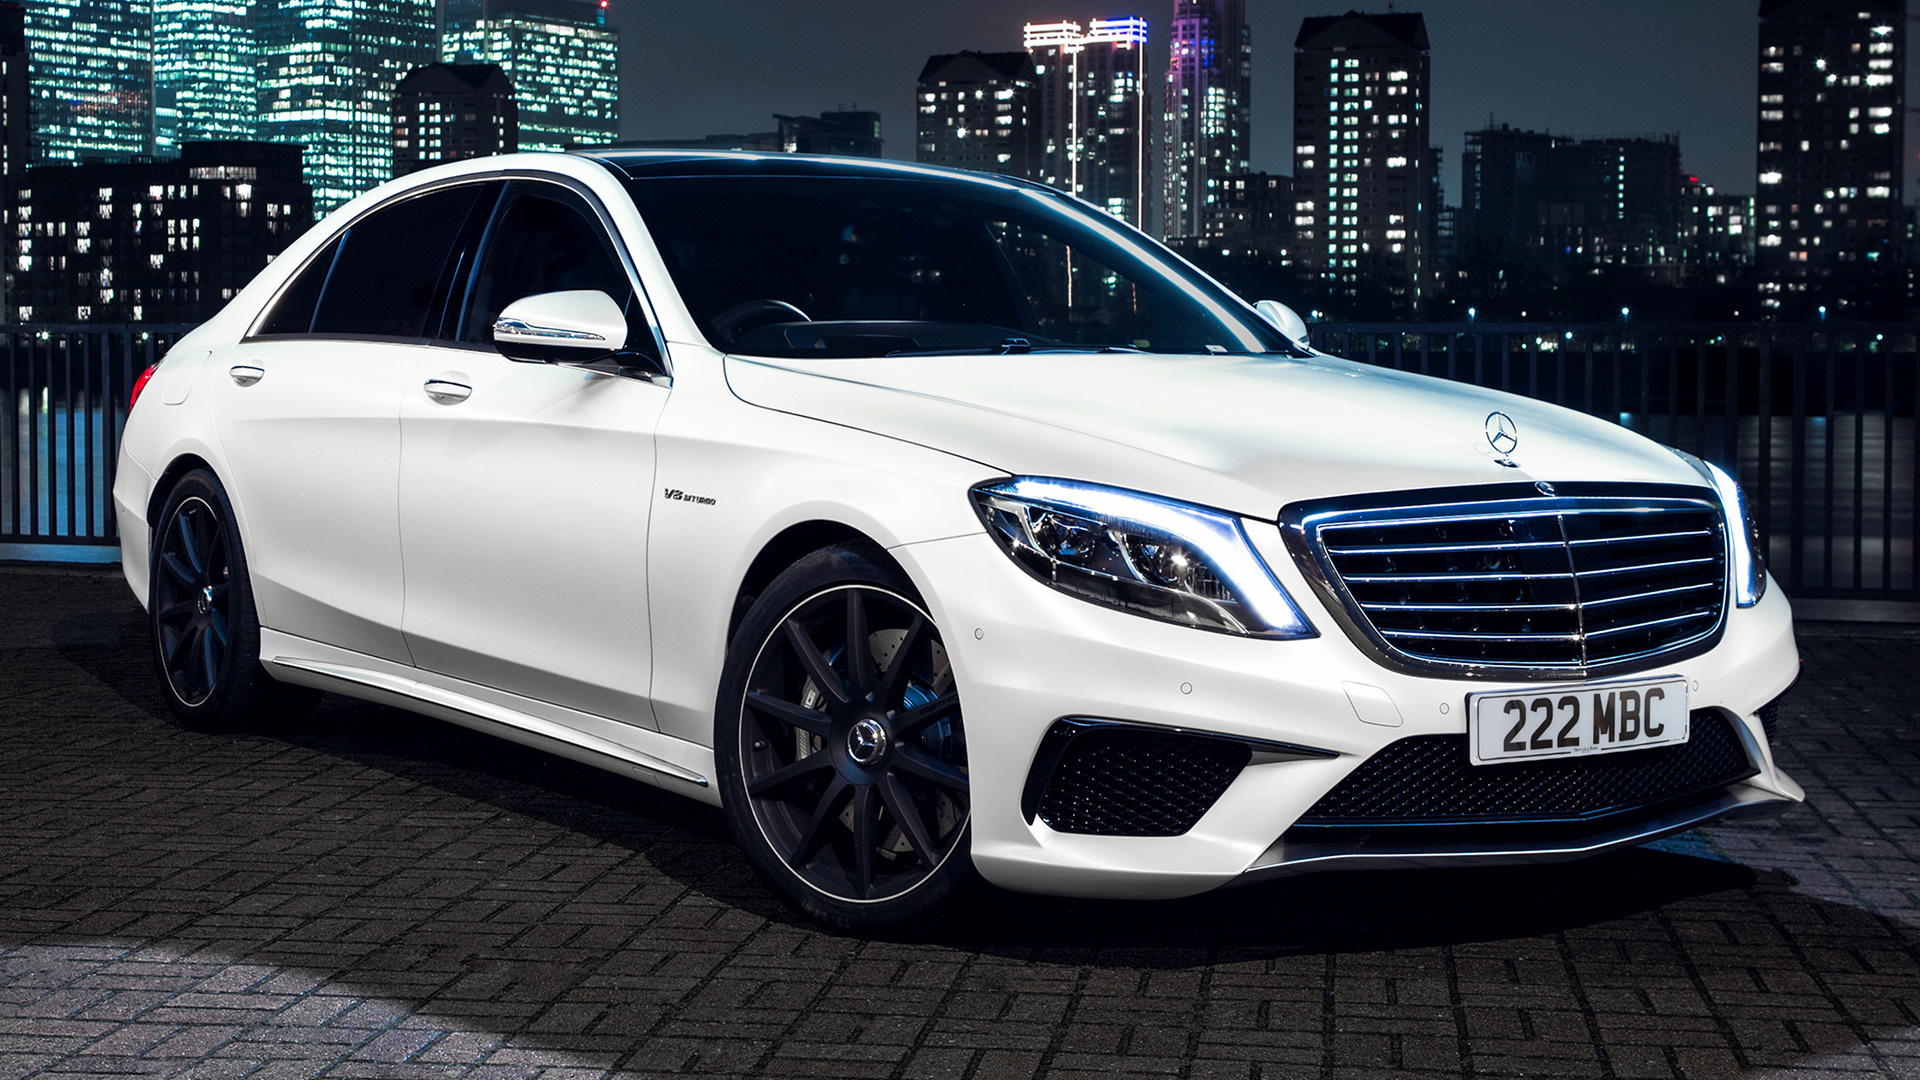 2013 Mercedes-Benz S 63 AMG [Long] (UK) - Wallpapers and ...